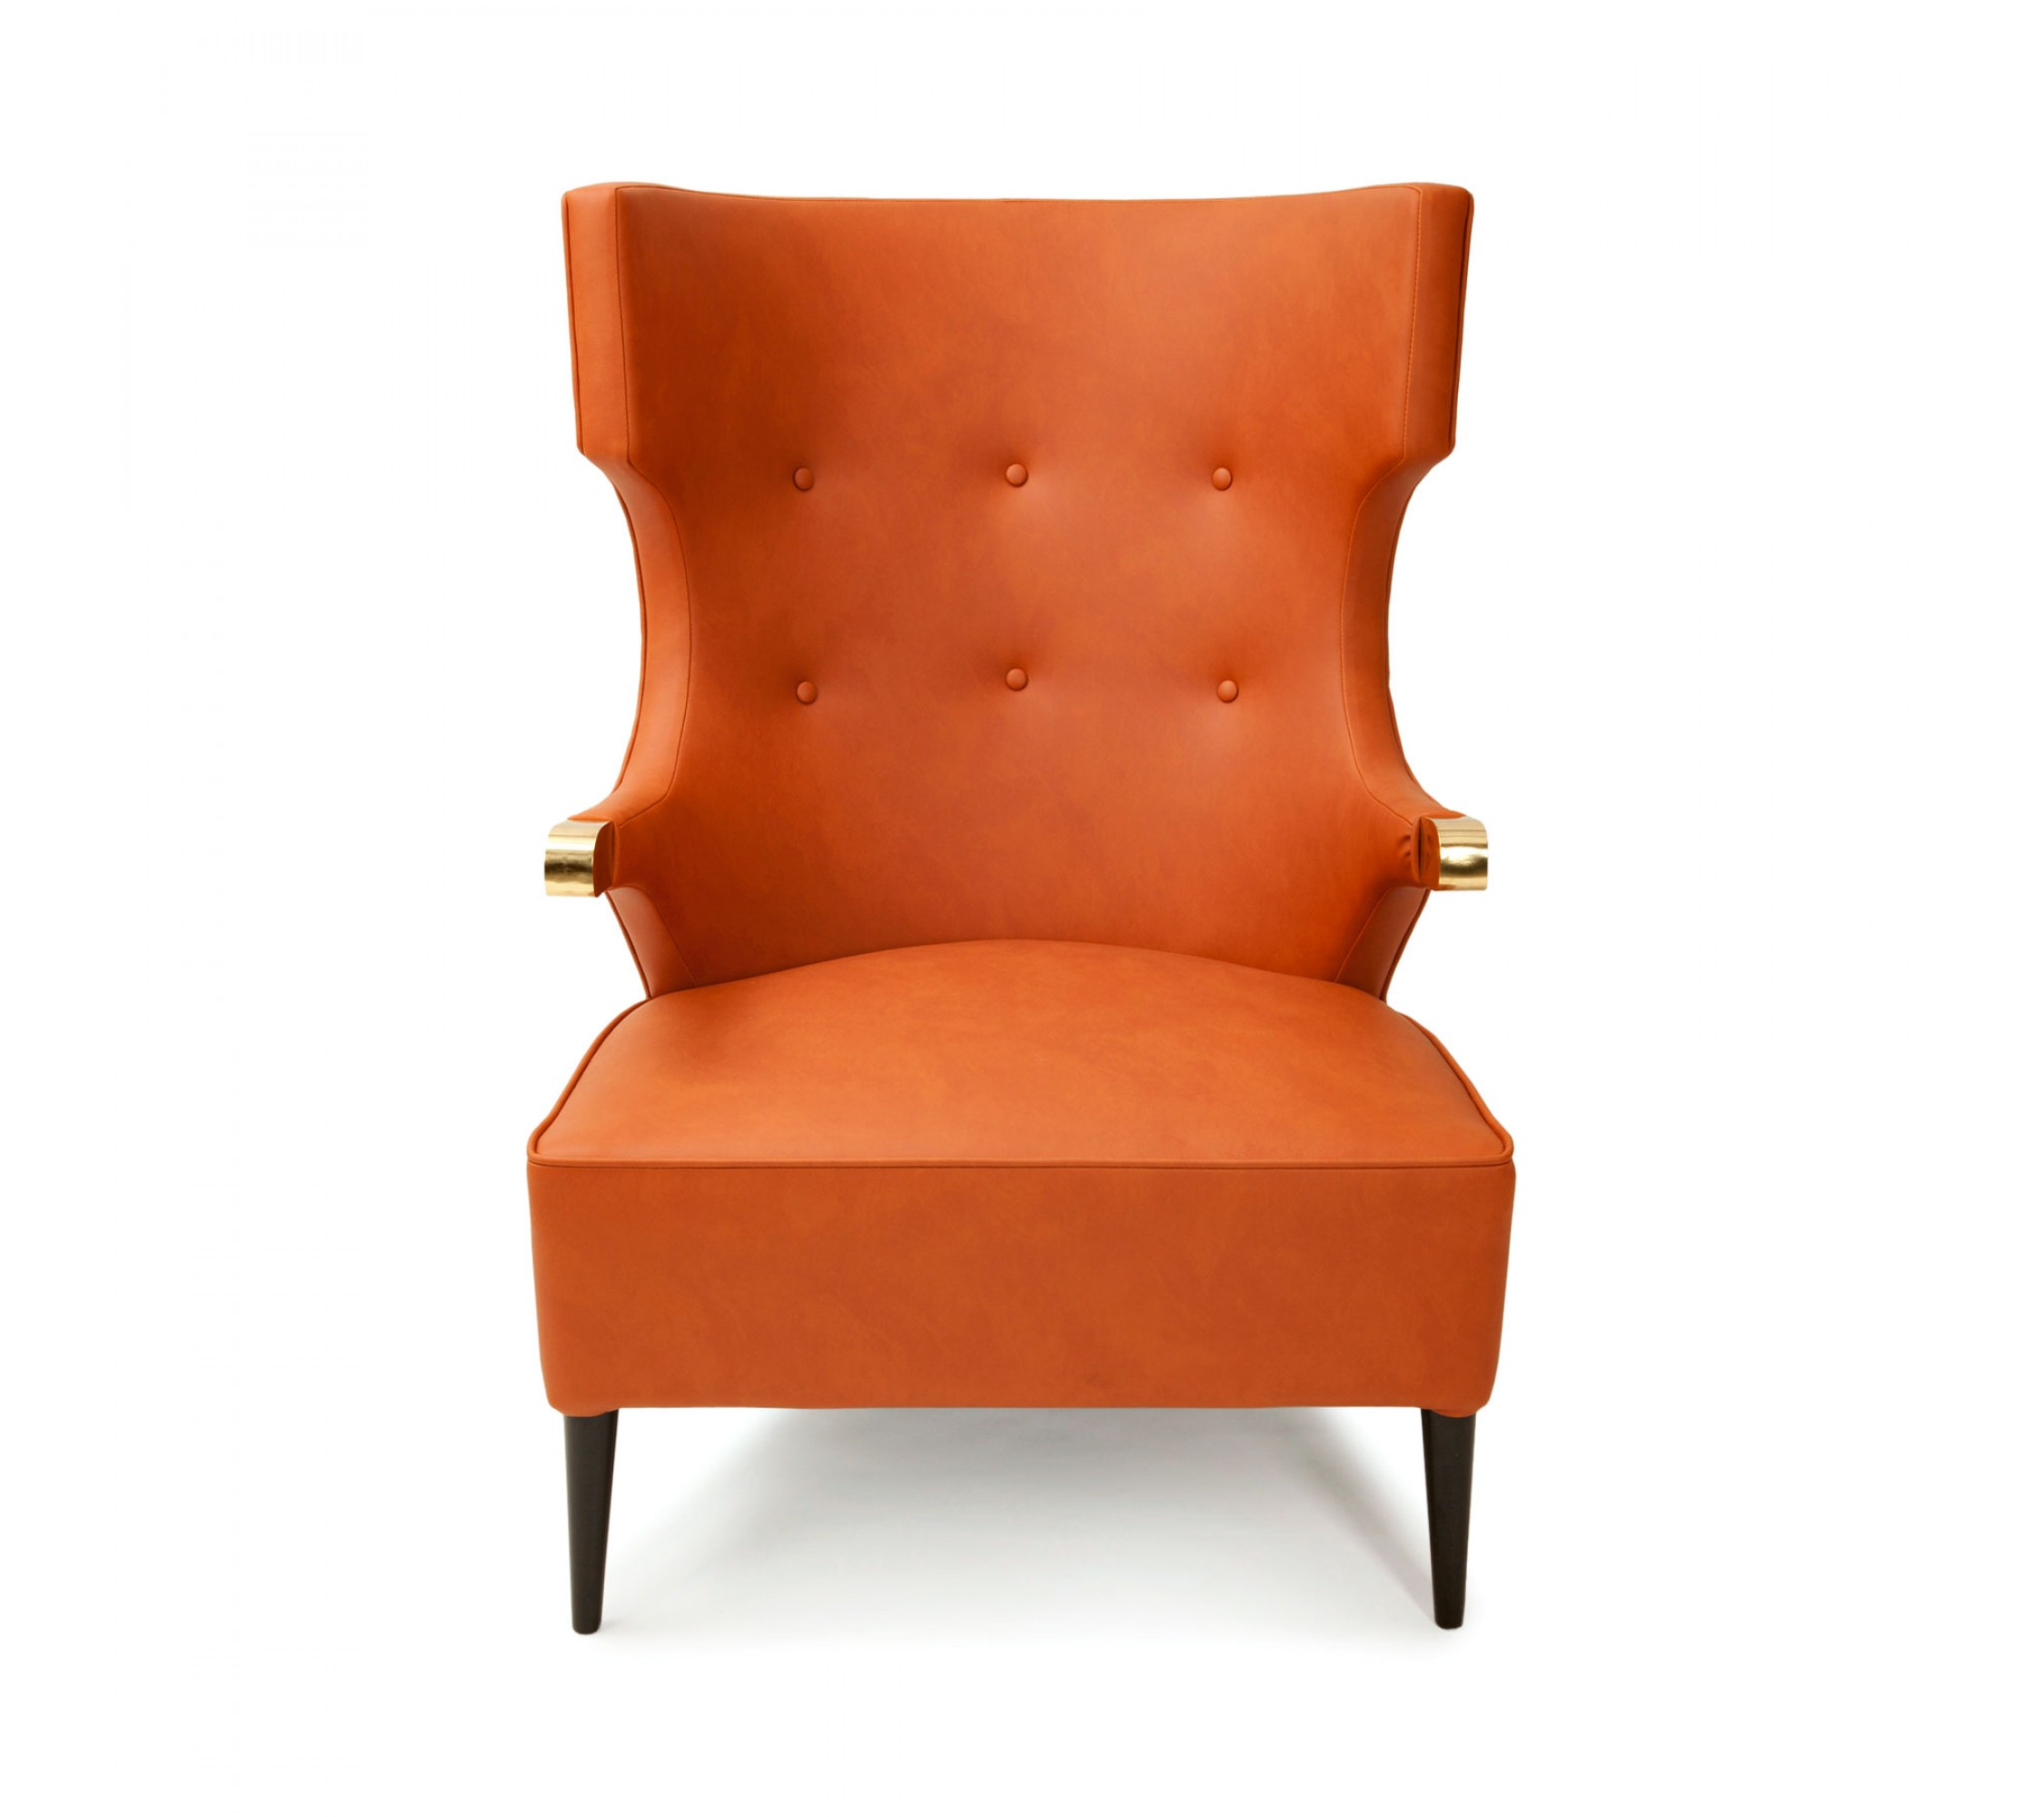 Kunstleder Sessel - Sika Orange